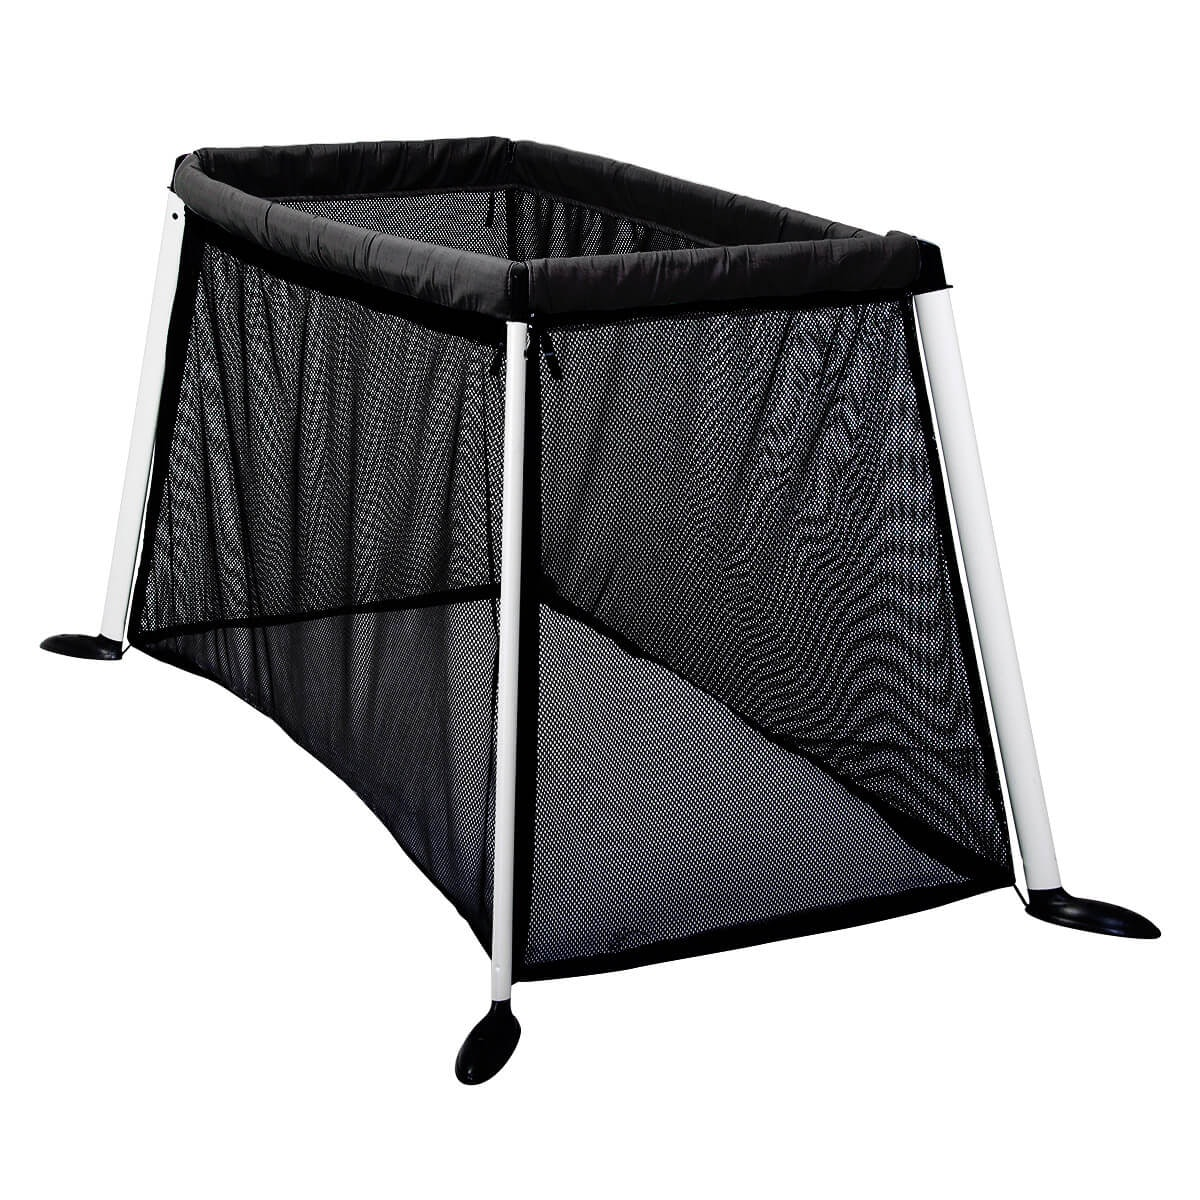 Baby cribs regulations canada - Which V3 Portable Travel Cots For Babies Have Been Recalled Only Those Made In Canada